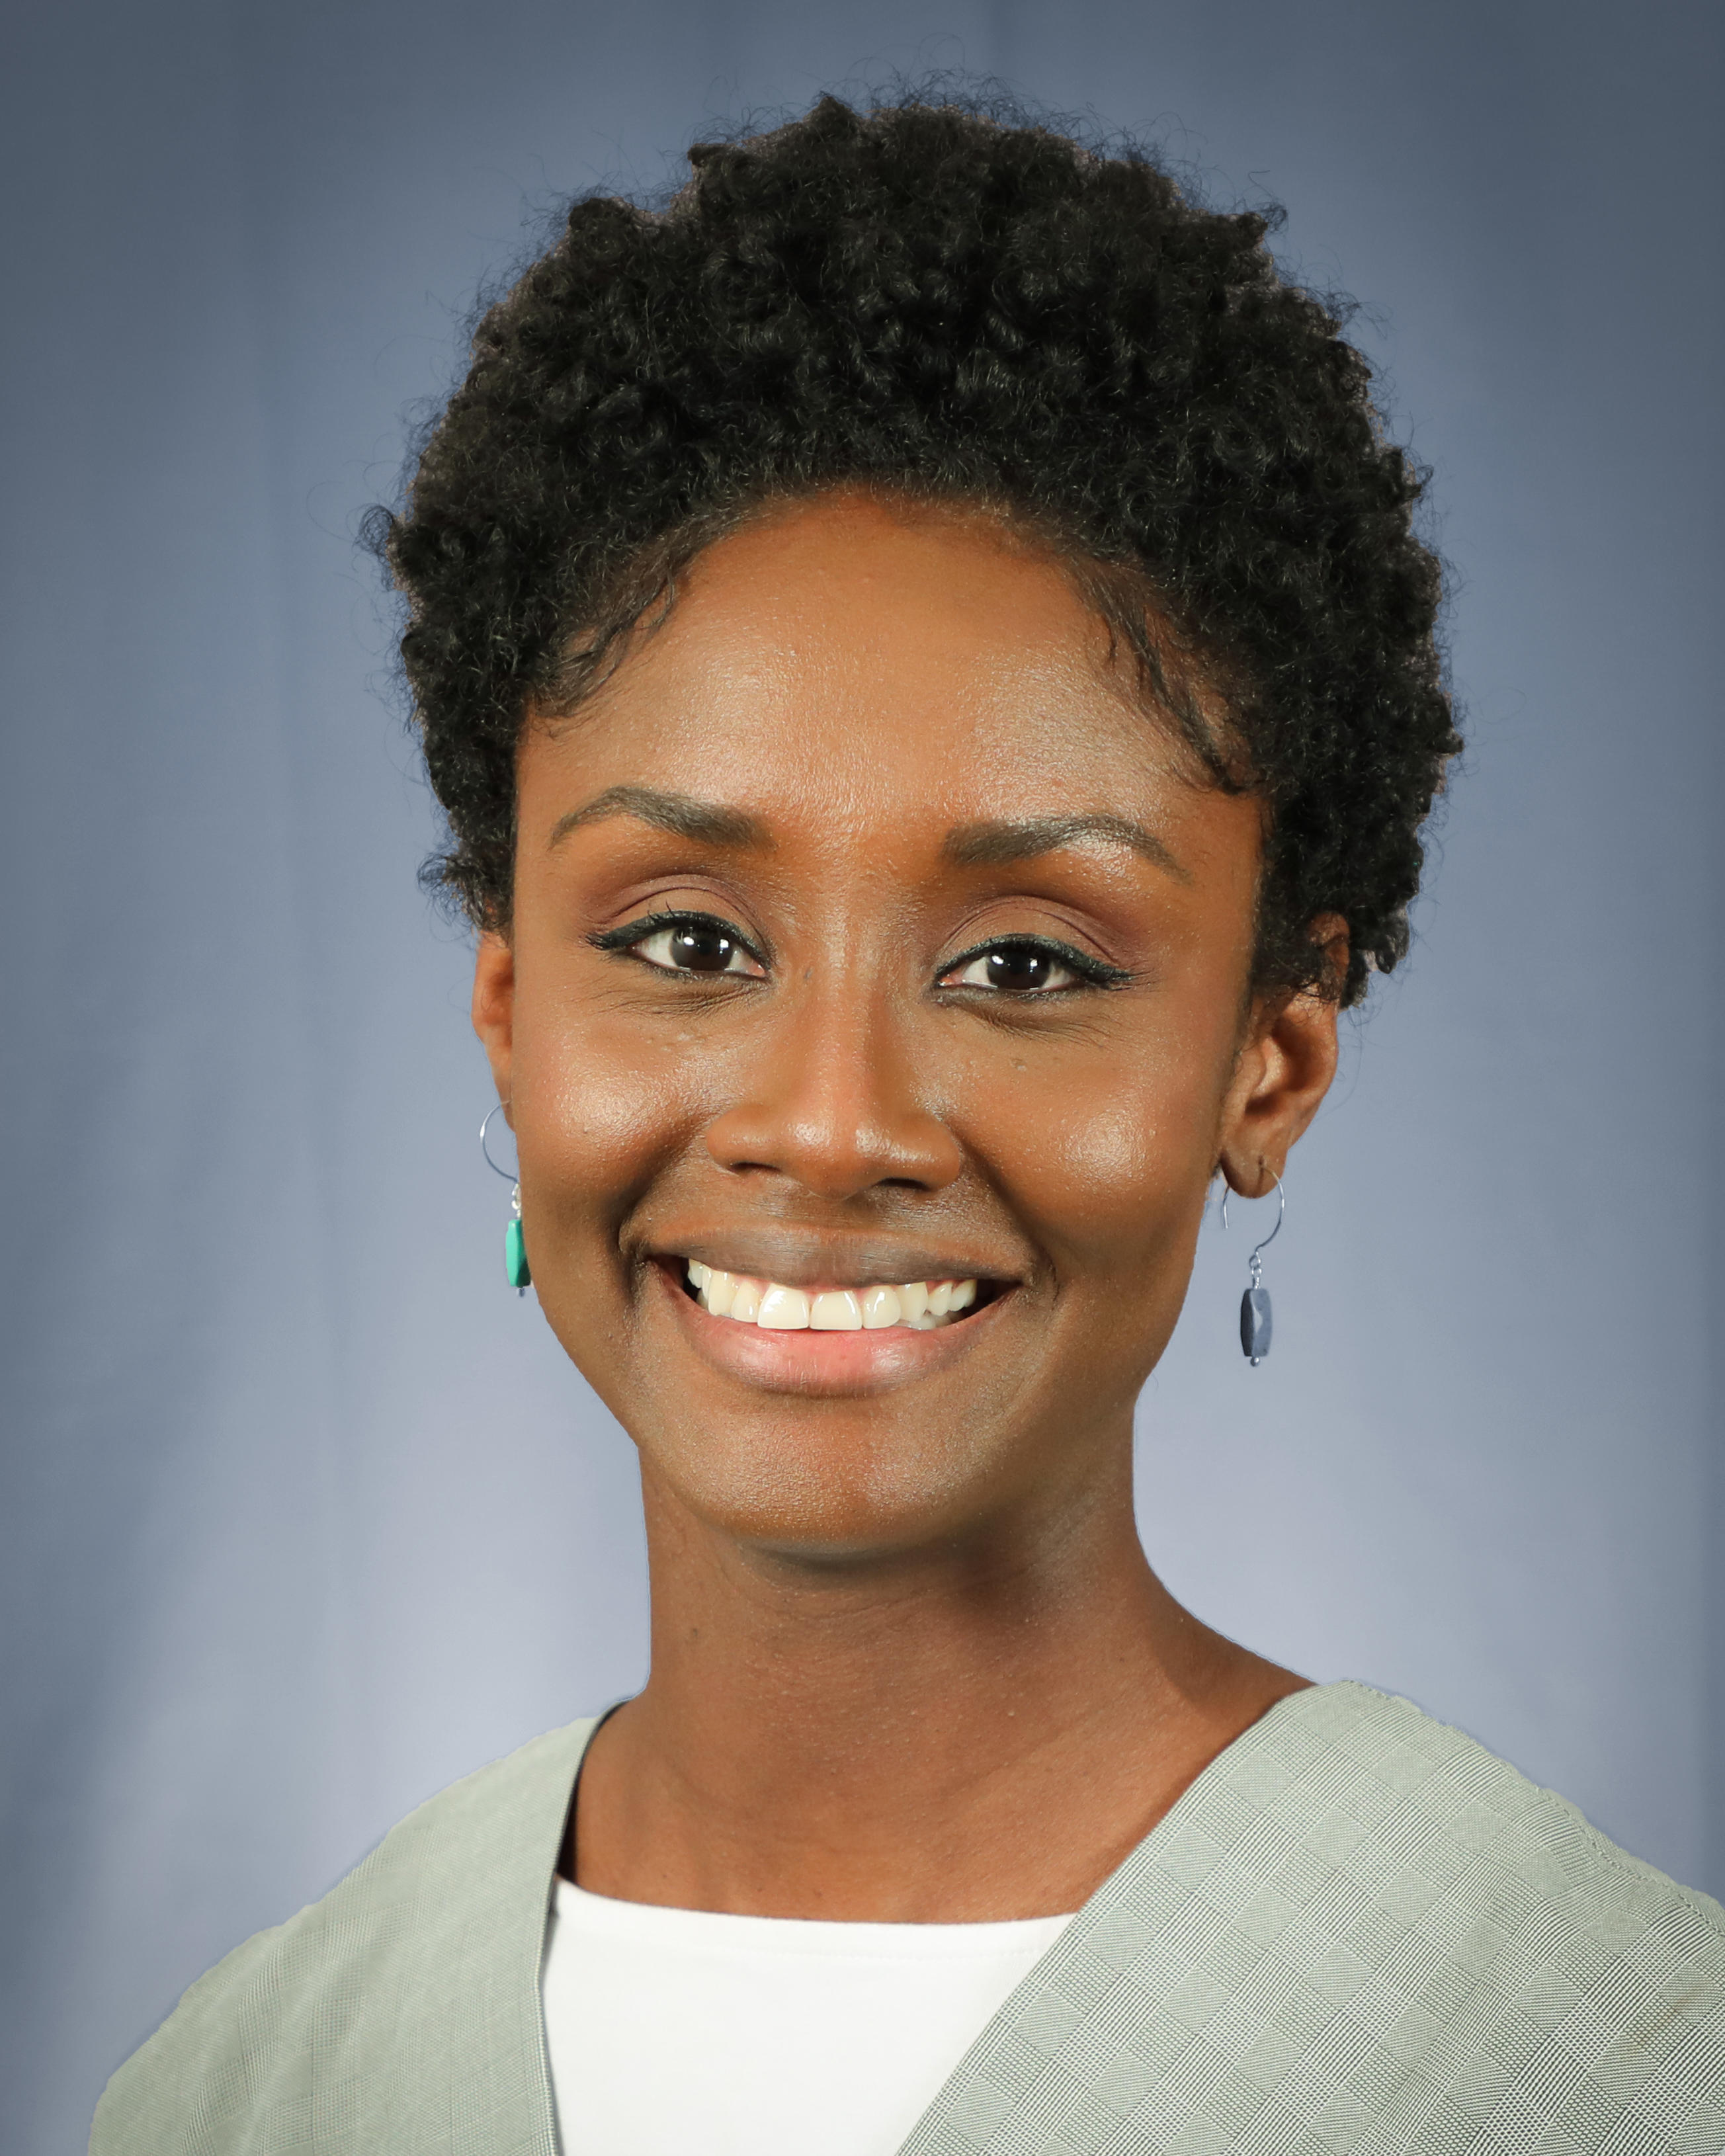 Headshot of Danille Prime, MD